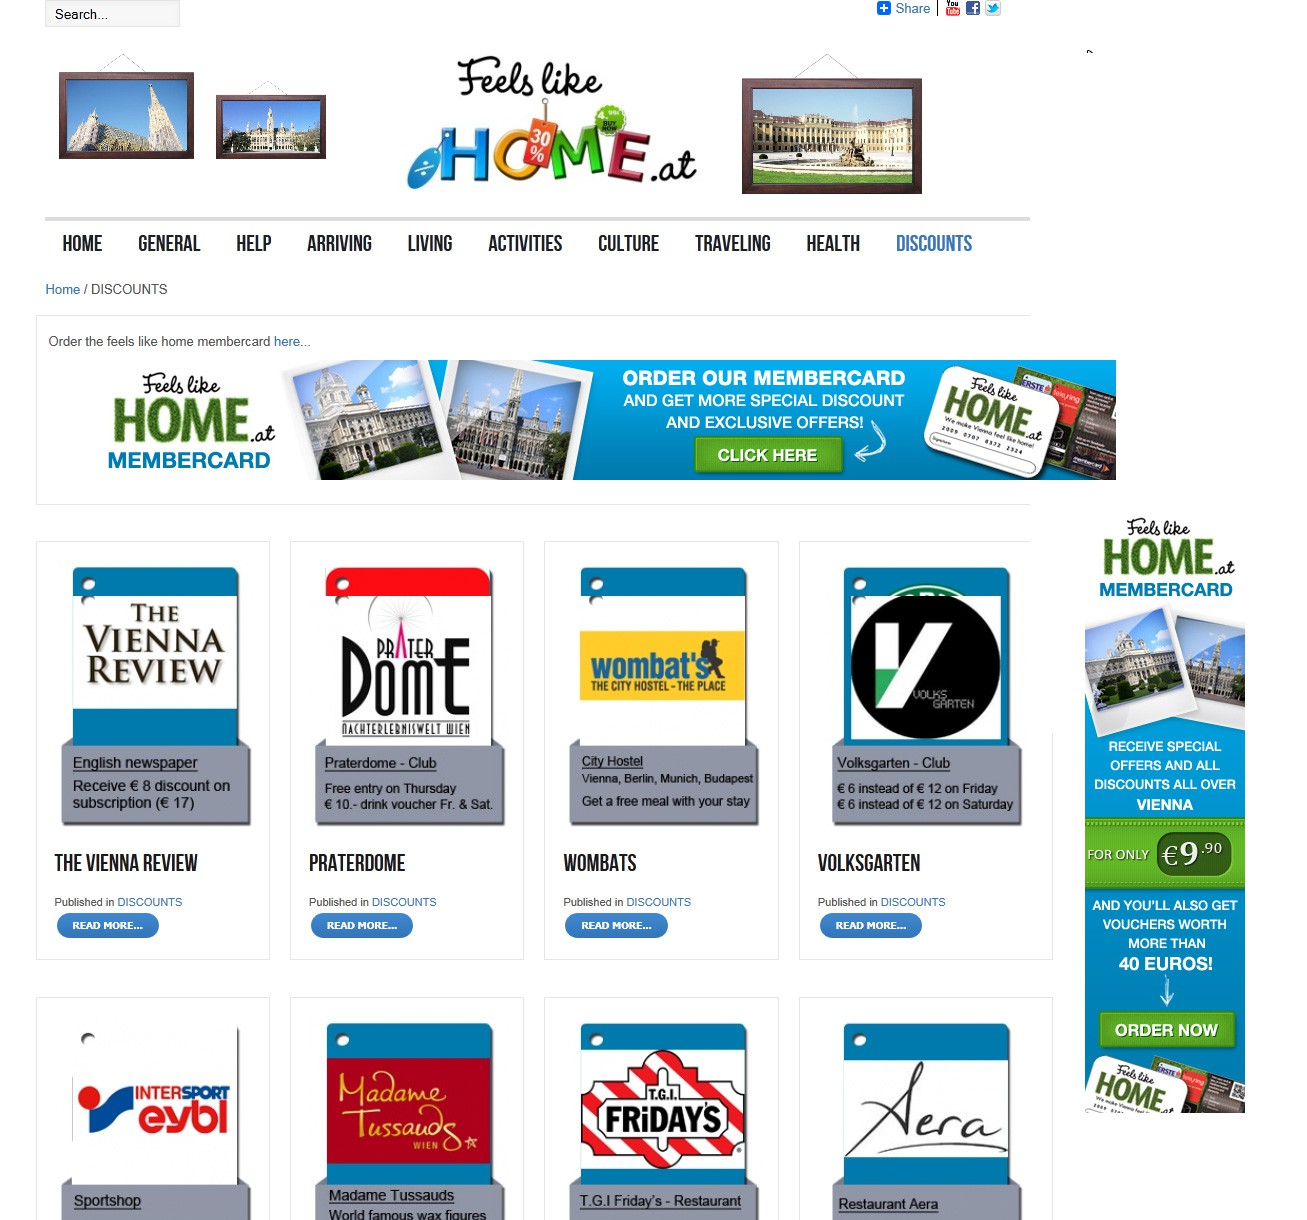 Create the next banner ad for Feelslikehome.at